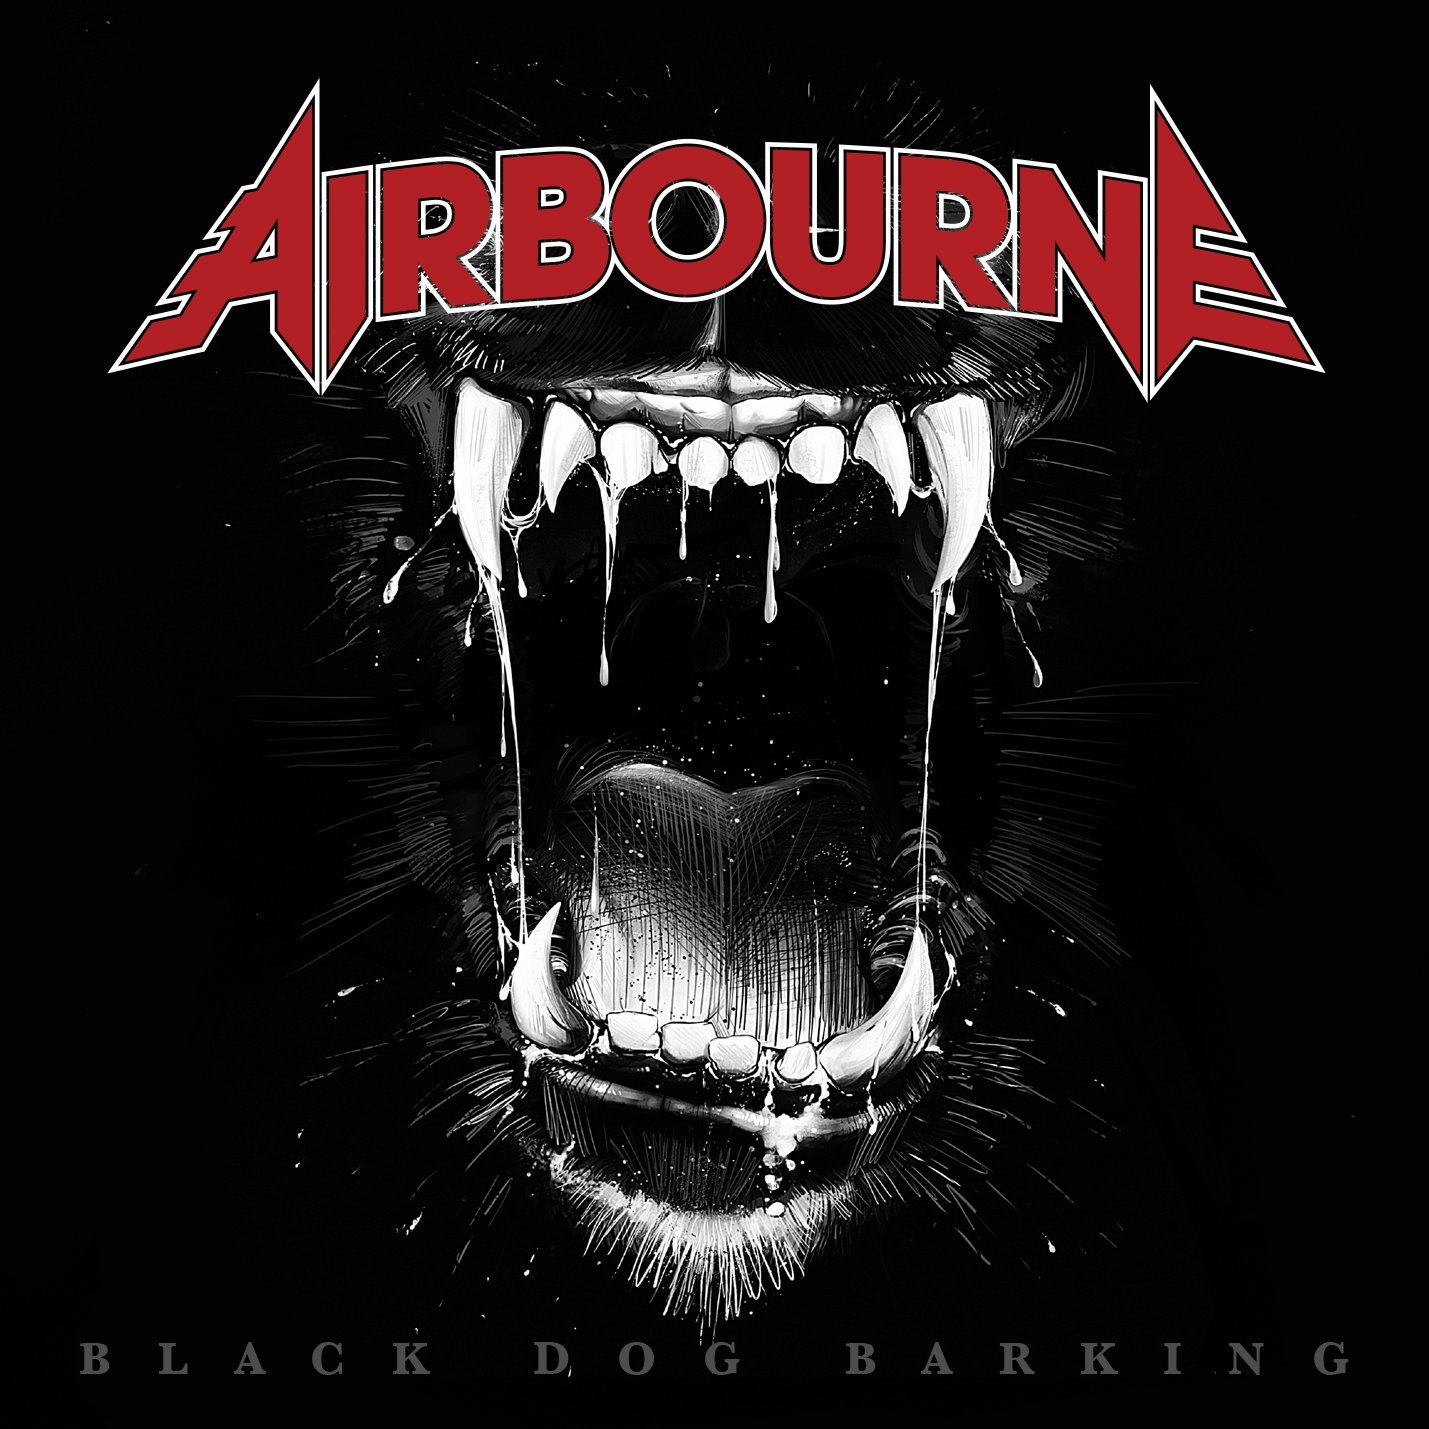 [Metal] Playlist - Page 12 Airbourne-black-dog-barking-promo-cover-pic